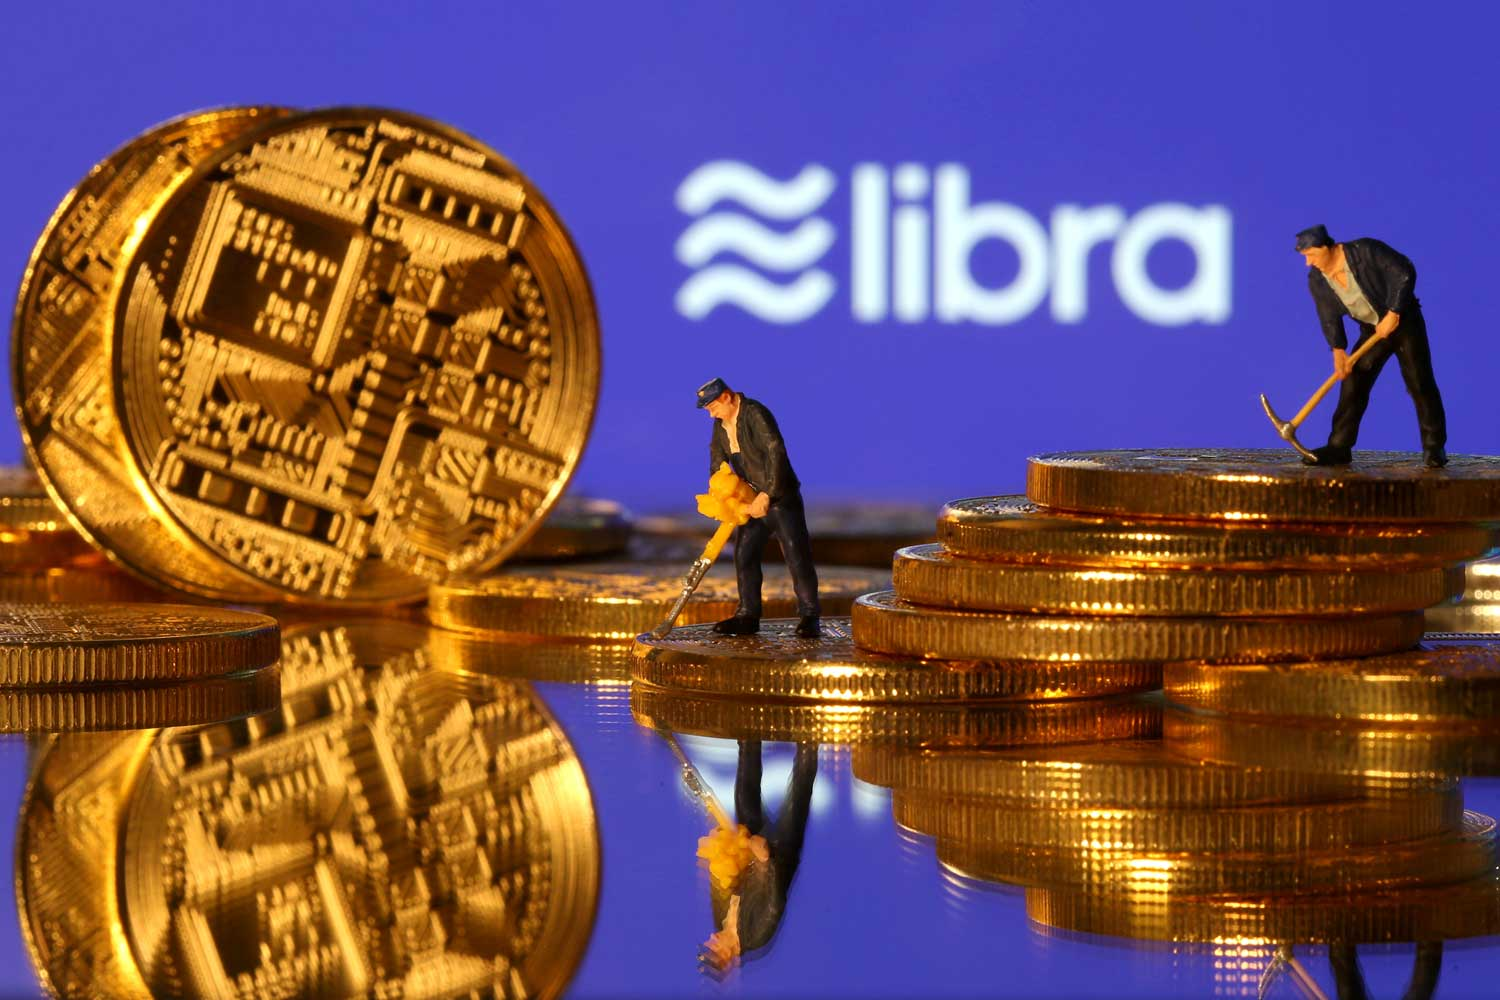 Small toy figures are seen on representations of virtual currency in front of the Libra logo in this illustration picture on June 21, 2019. (Reuters photo)